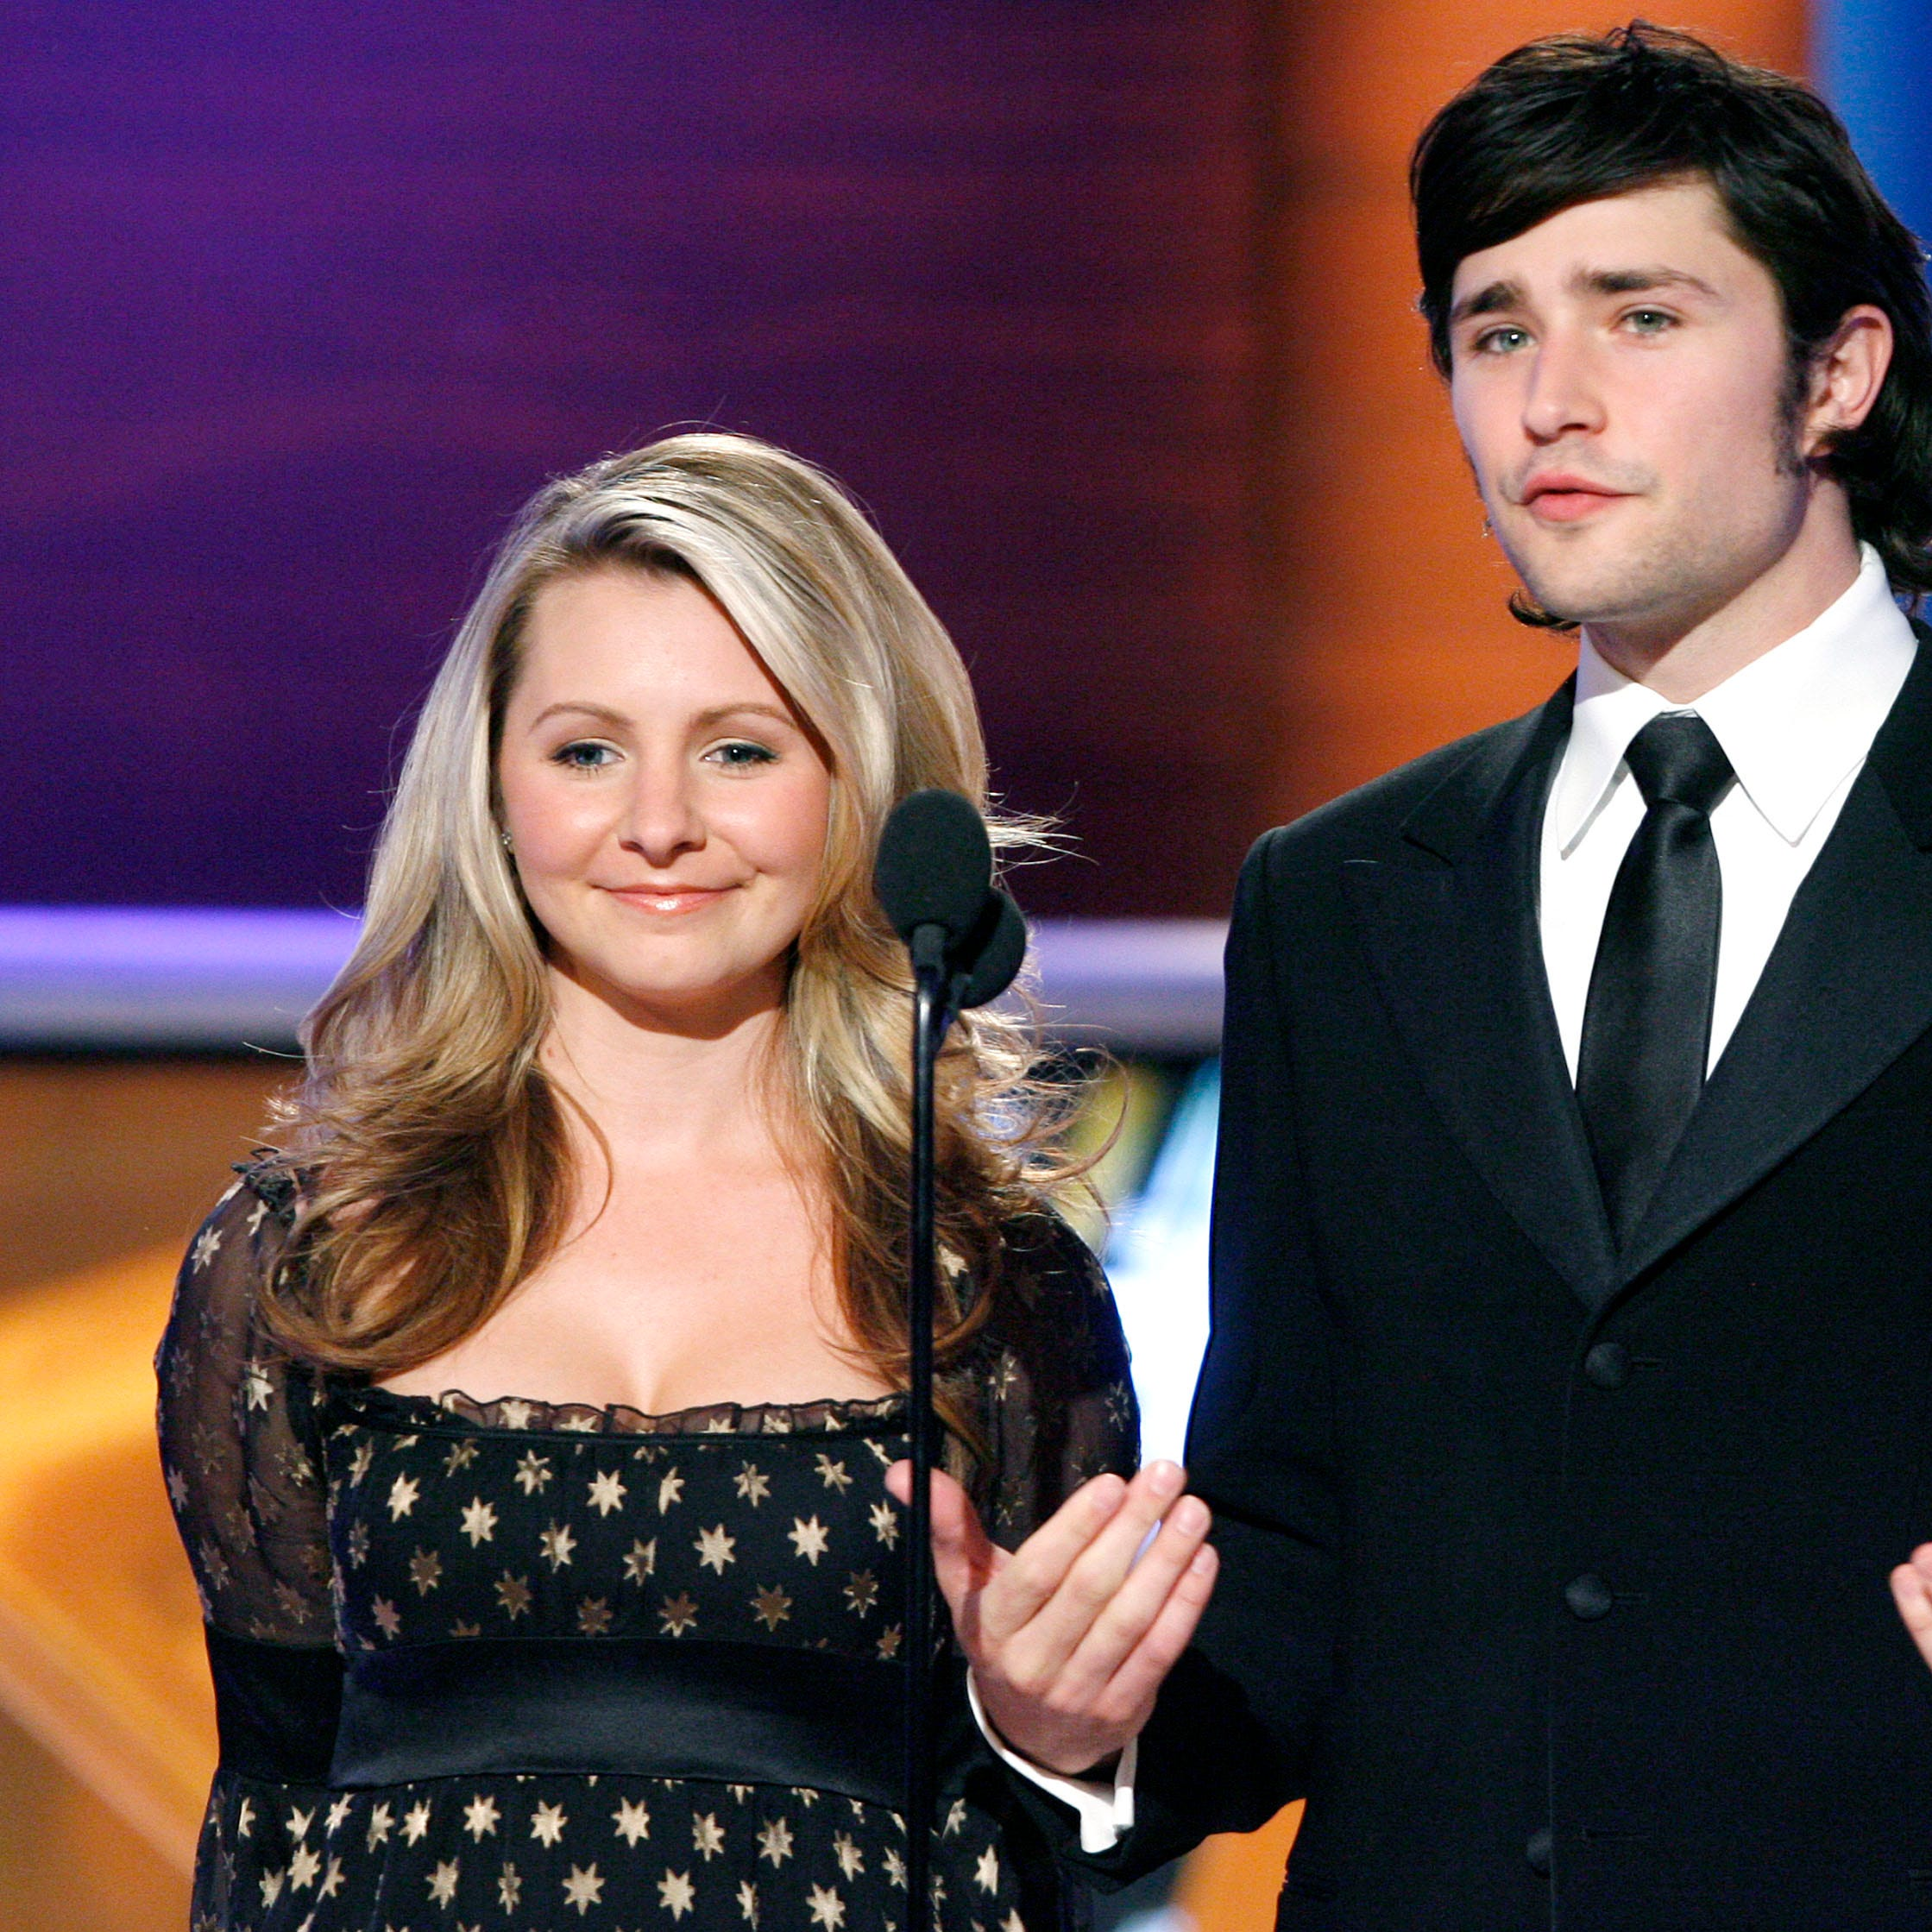 Actors Beverley Mitchell, left, and Matt Dallas present the award for Favorite Father/Daughter at the Family Television Awards in Beverly Hills, Calif., on Wednesday, Nov. 29, 2006. (AP Photo/Matt Sayles) ORG XMIT: CAMW113